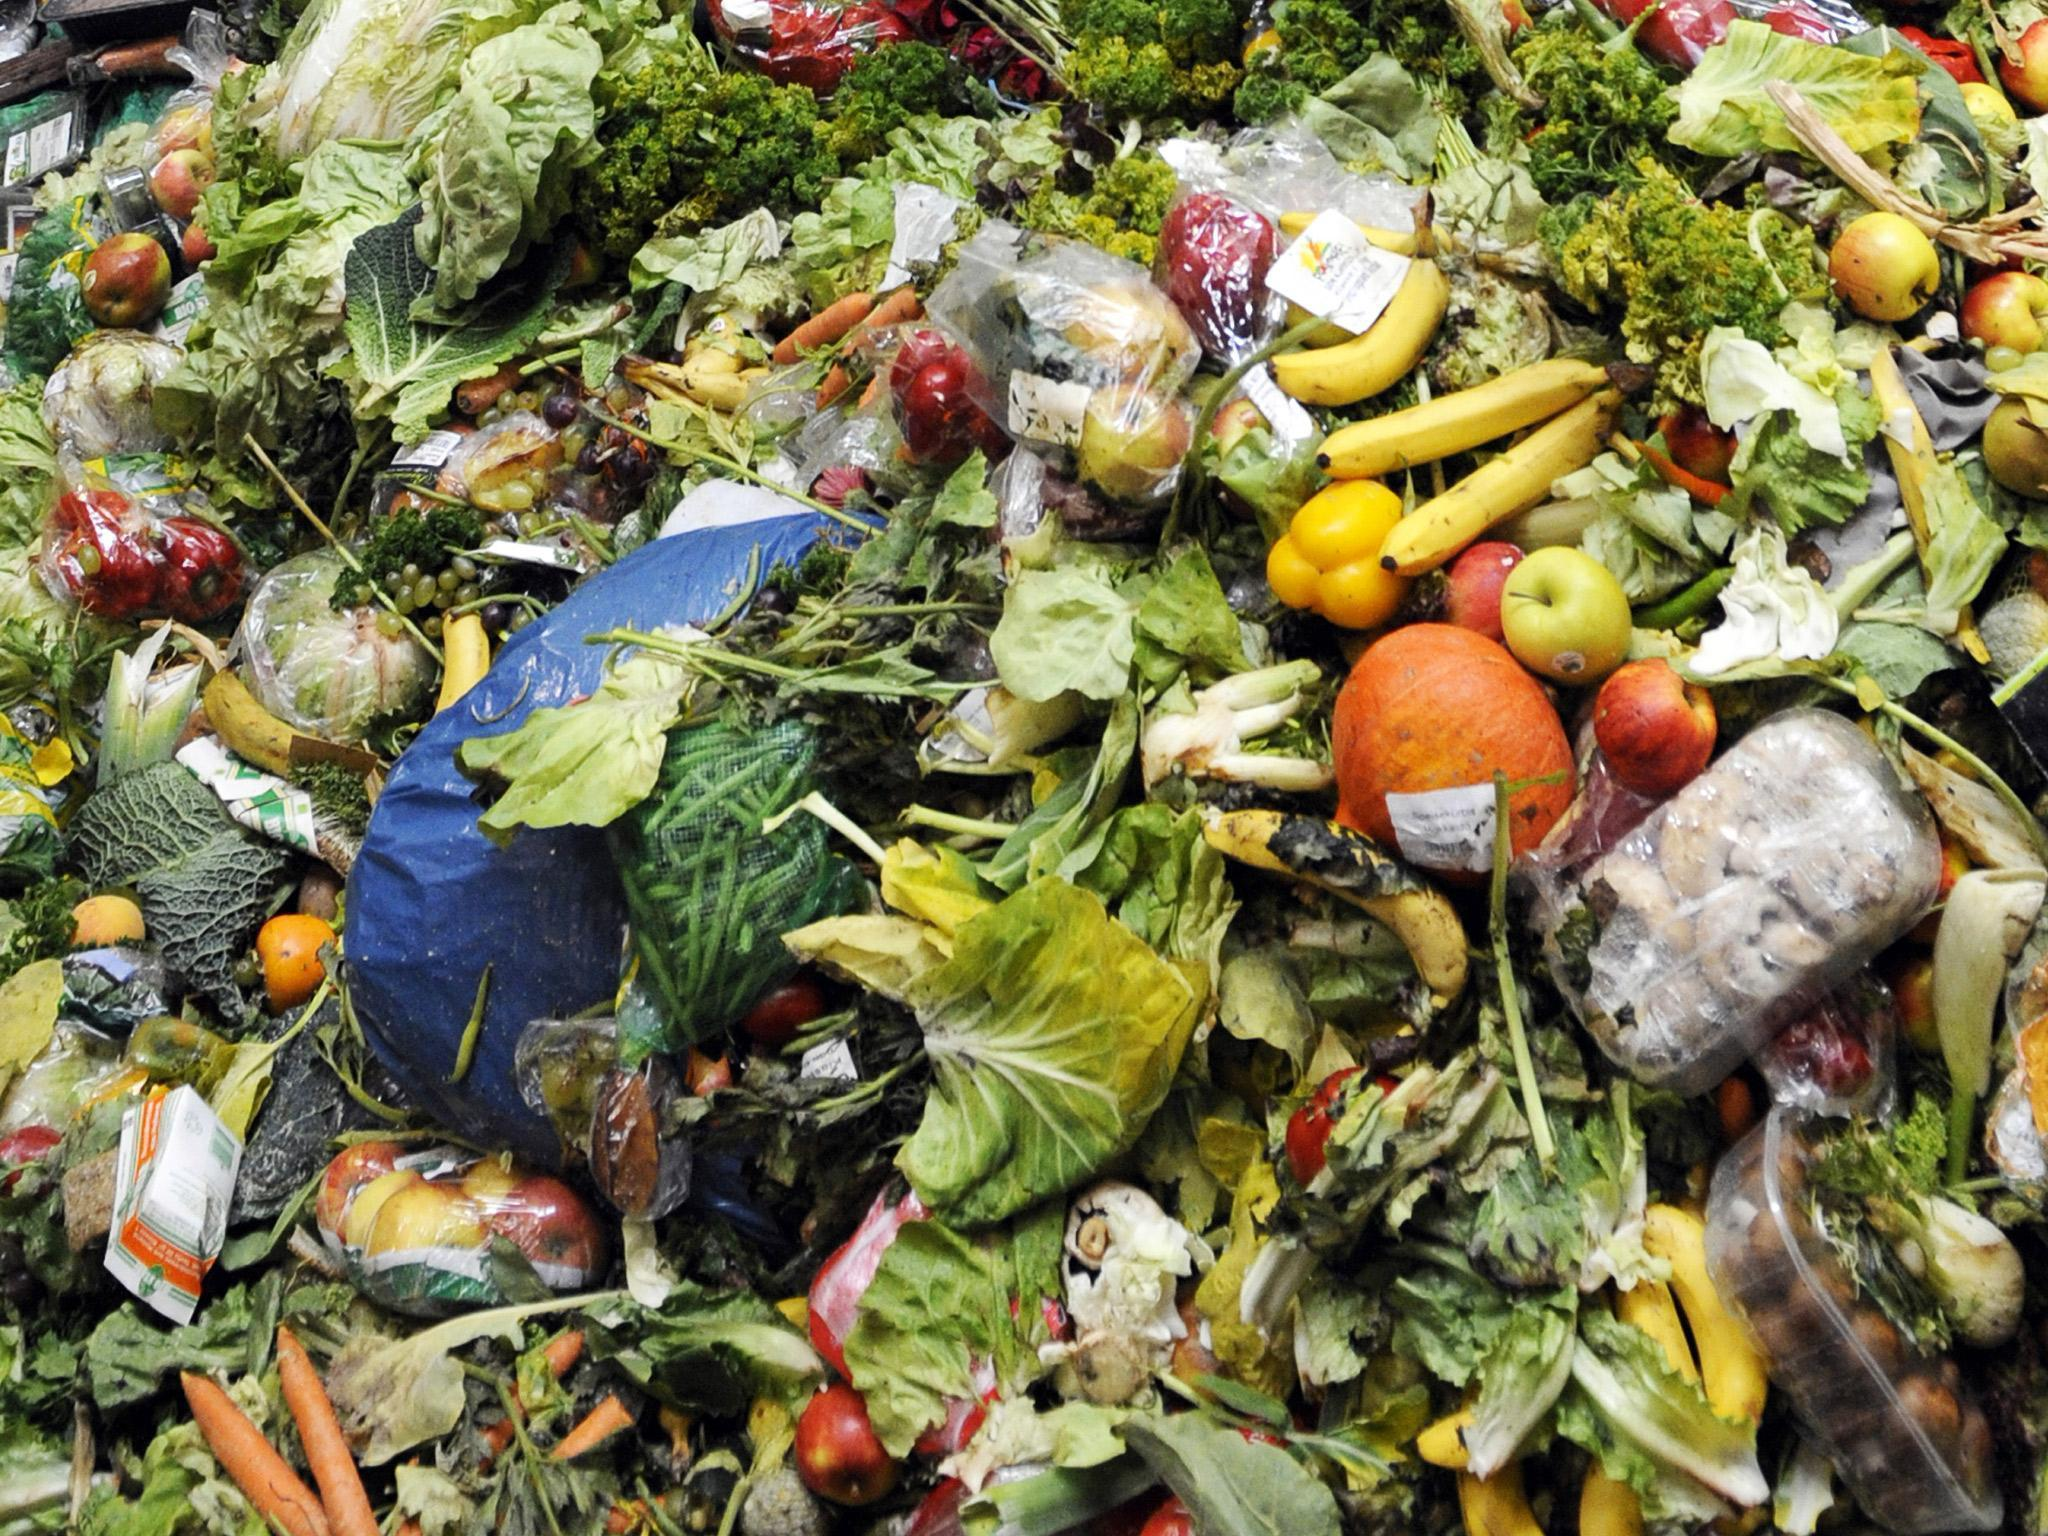 France is the world's best country for food waste